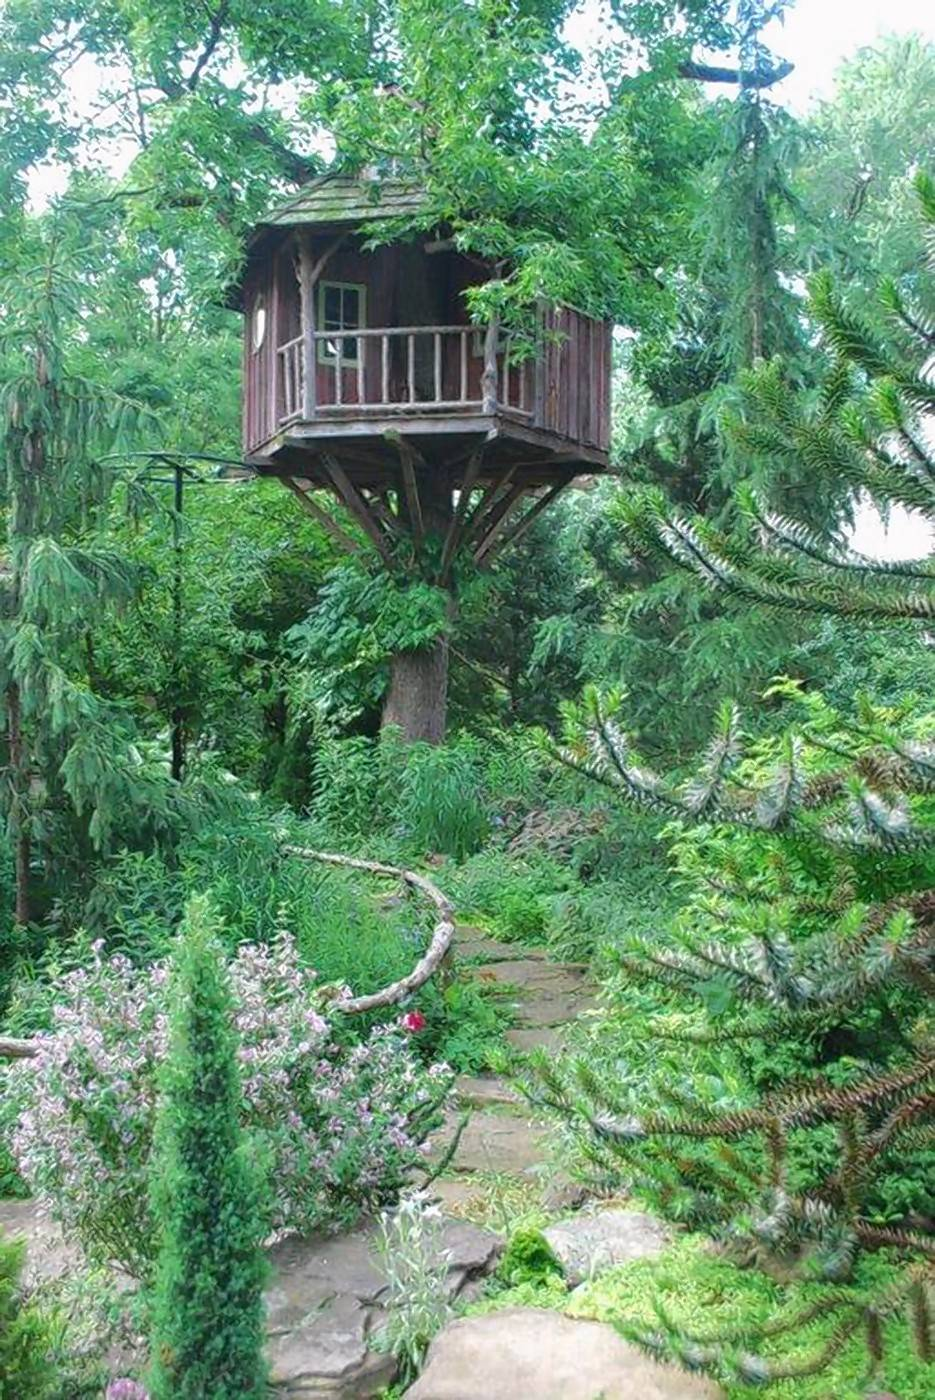 Pierre Moitrier's sense of garden artistry is seen in a beautifully crafted treehouse perched in a sweet gum tree. The interior is handsomely detailed, with an air of a home in the treetops.